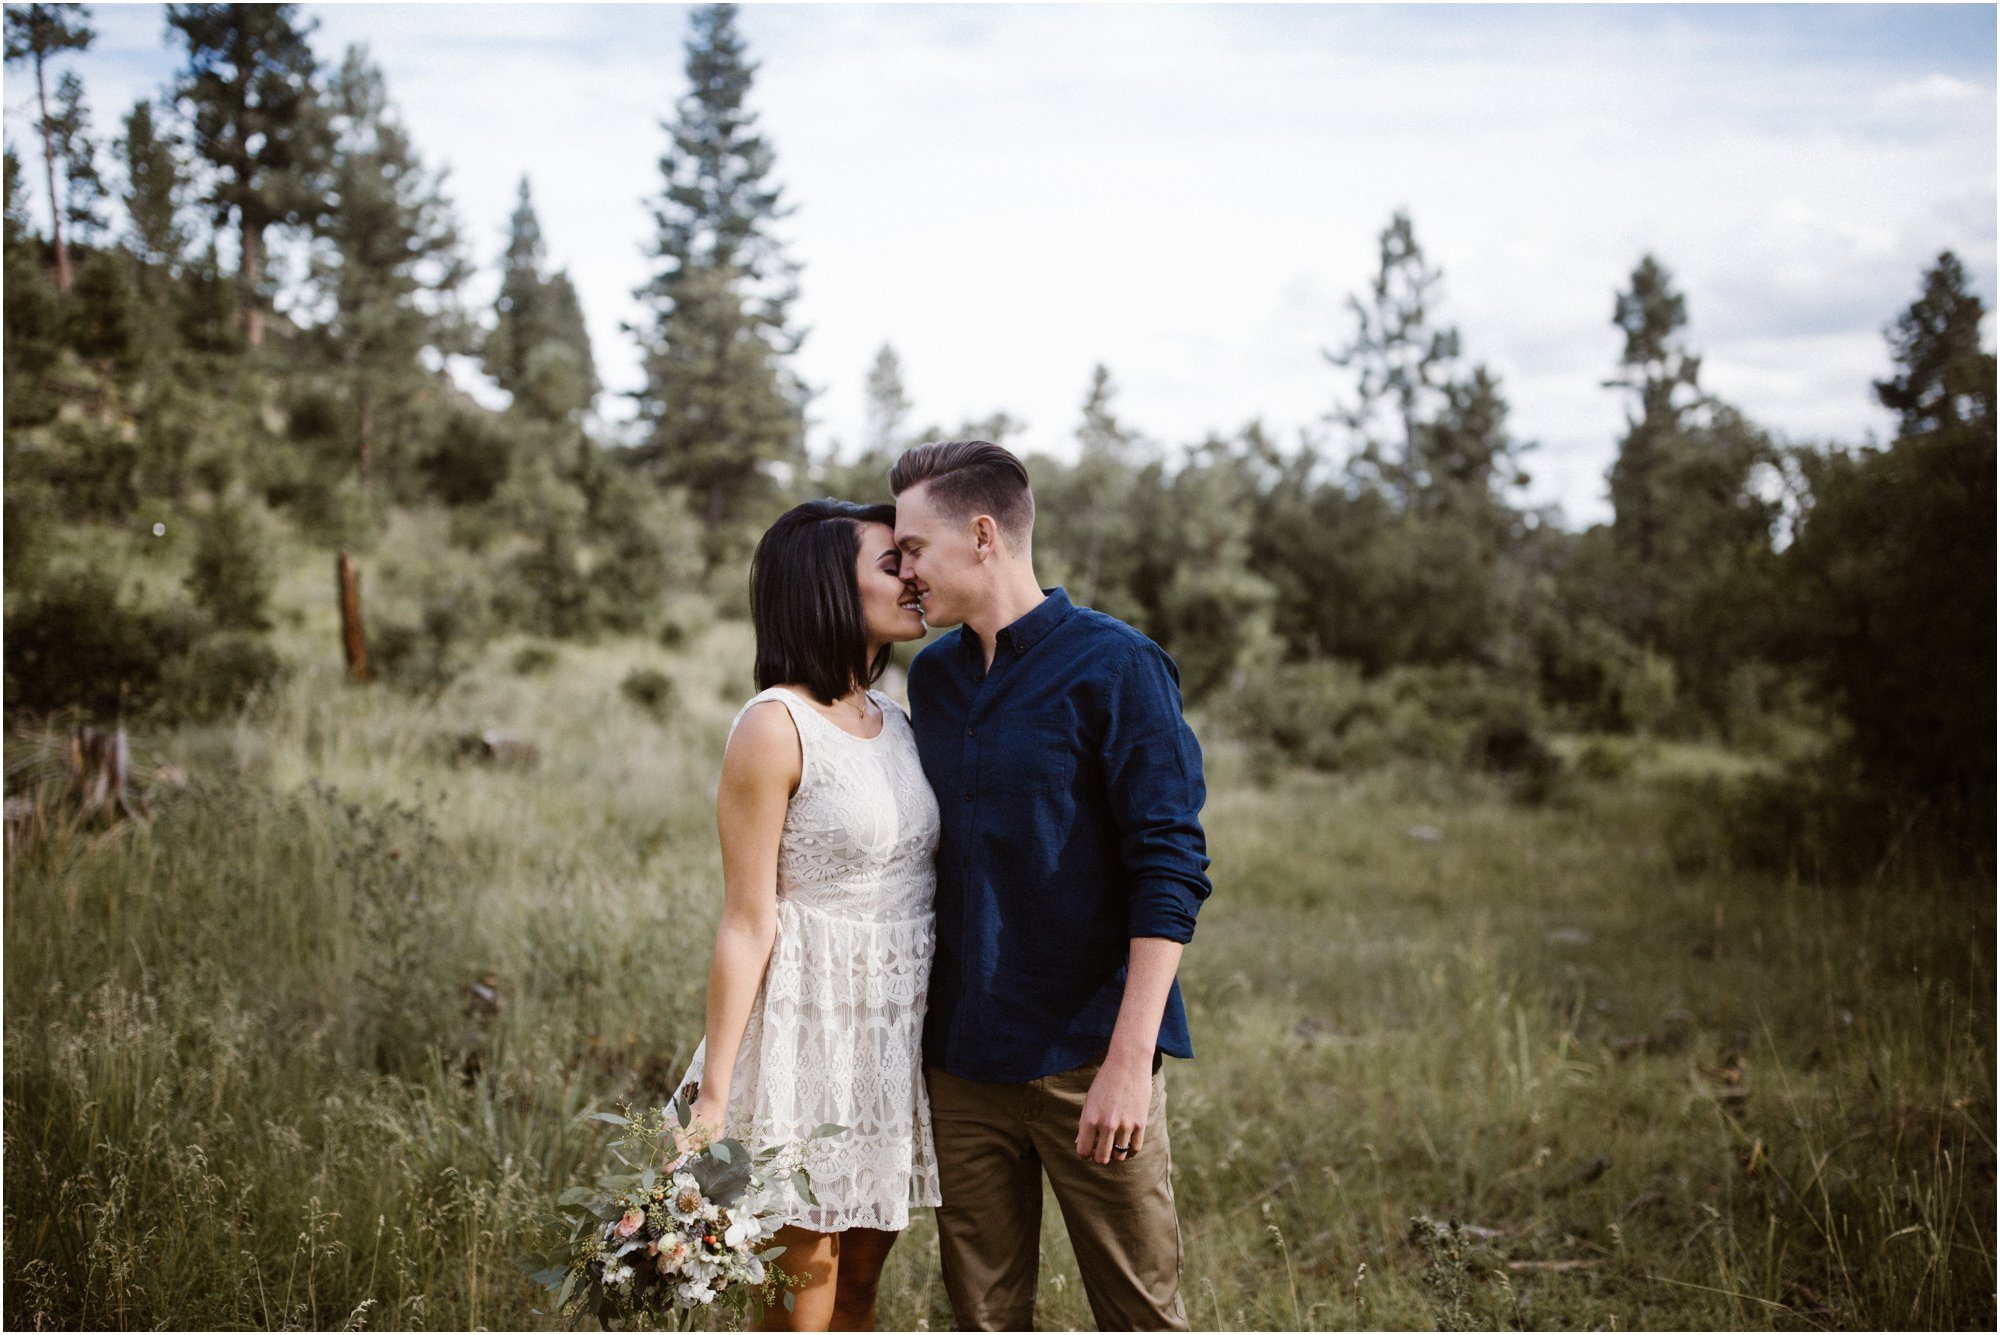 027Blue Rose Photography_ Albuquerque Engagement Photographer_ Blue Rose Studios_ Anniversary Pictures Santa Fe Photographer